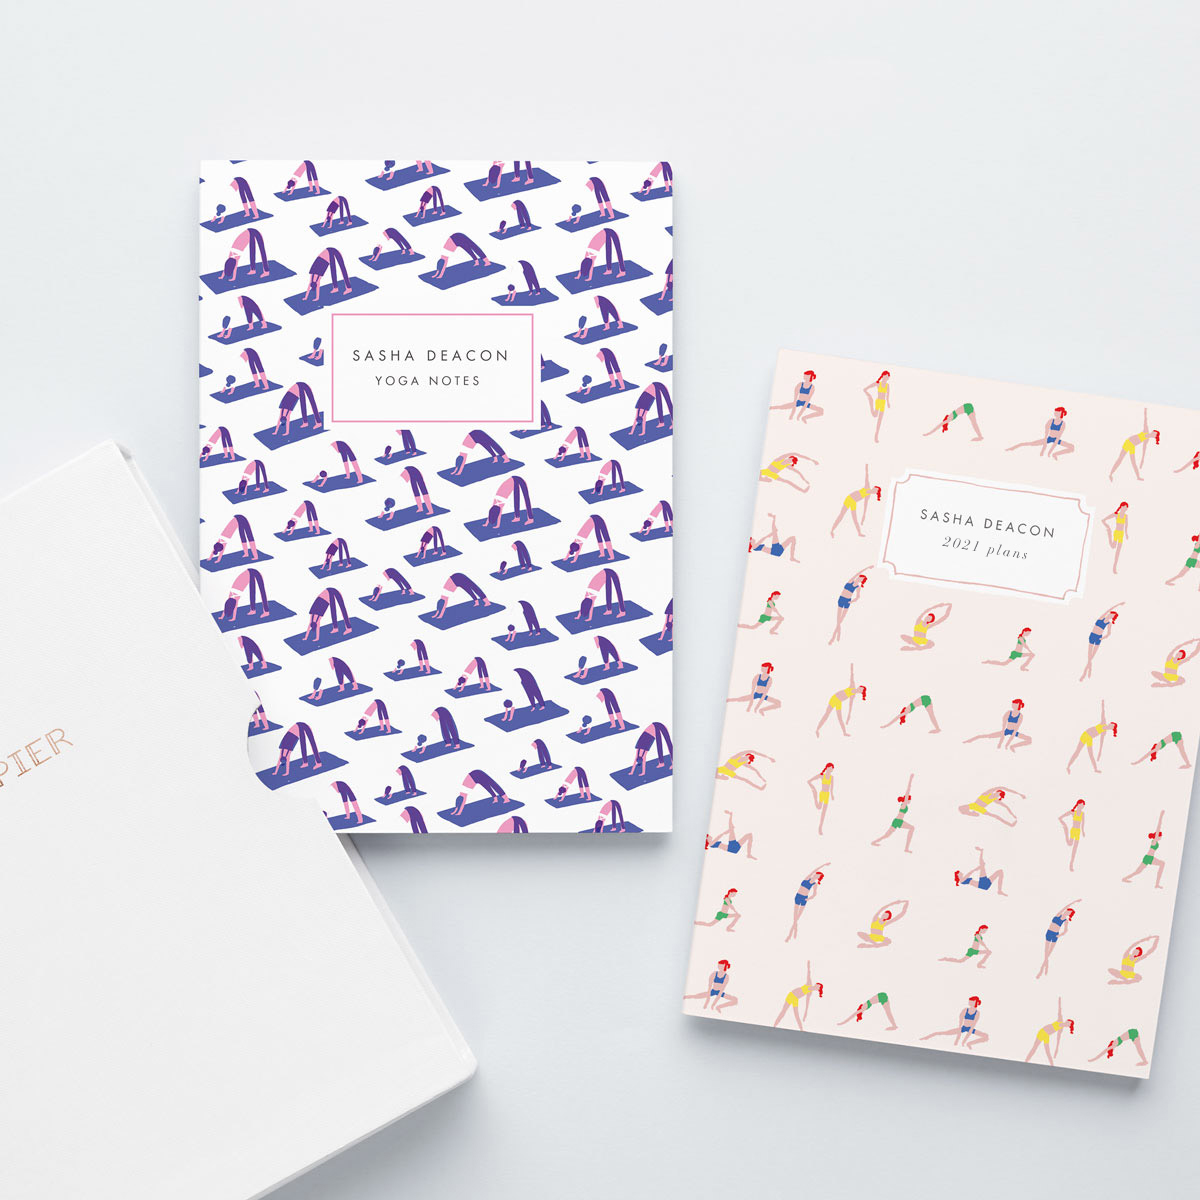 09.19 productimagery bundles 2books yoga